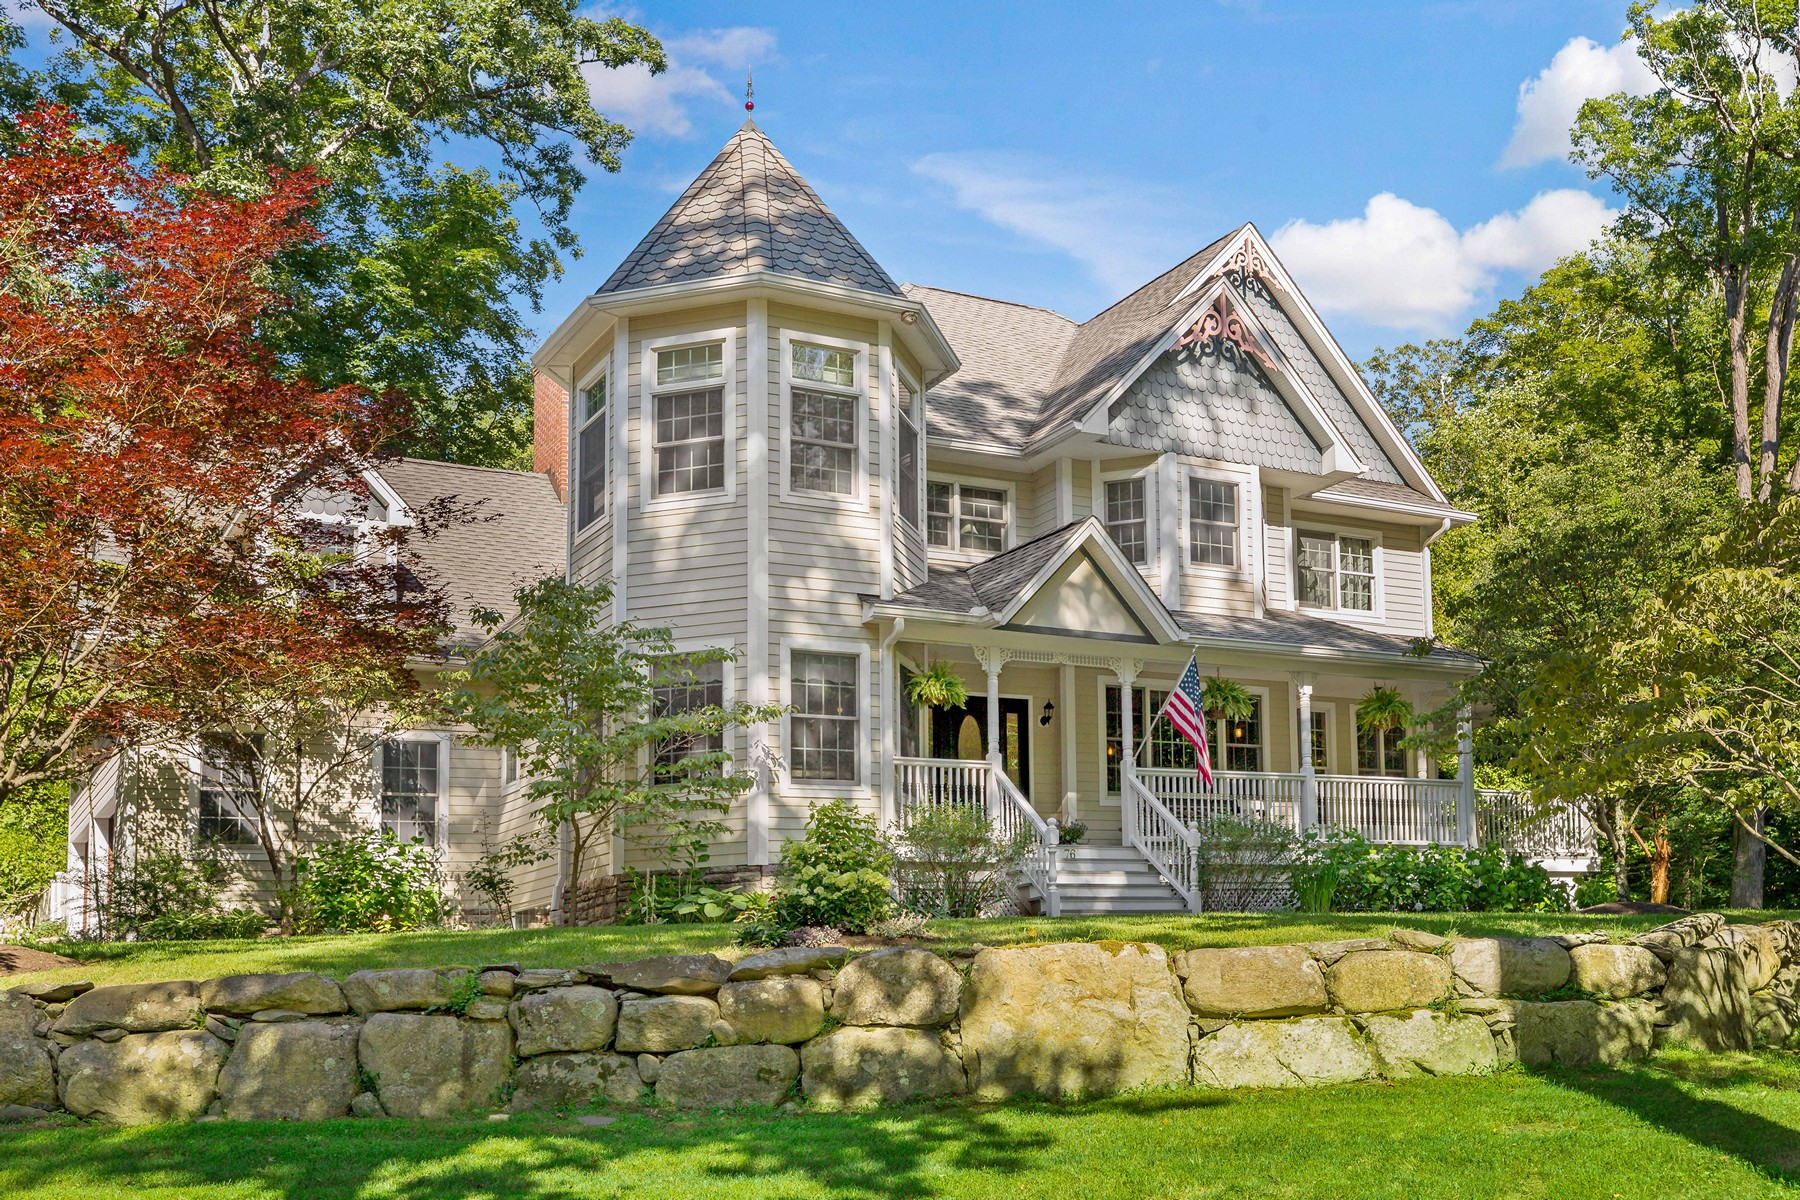 Single Family Homes for Active at Curated Victorian 76 Snake Hill Road Garrison, New York 10524 United States